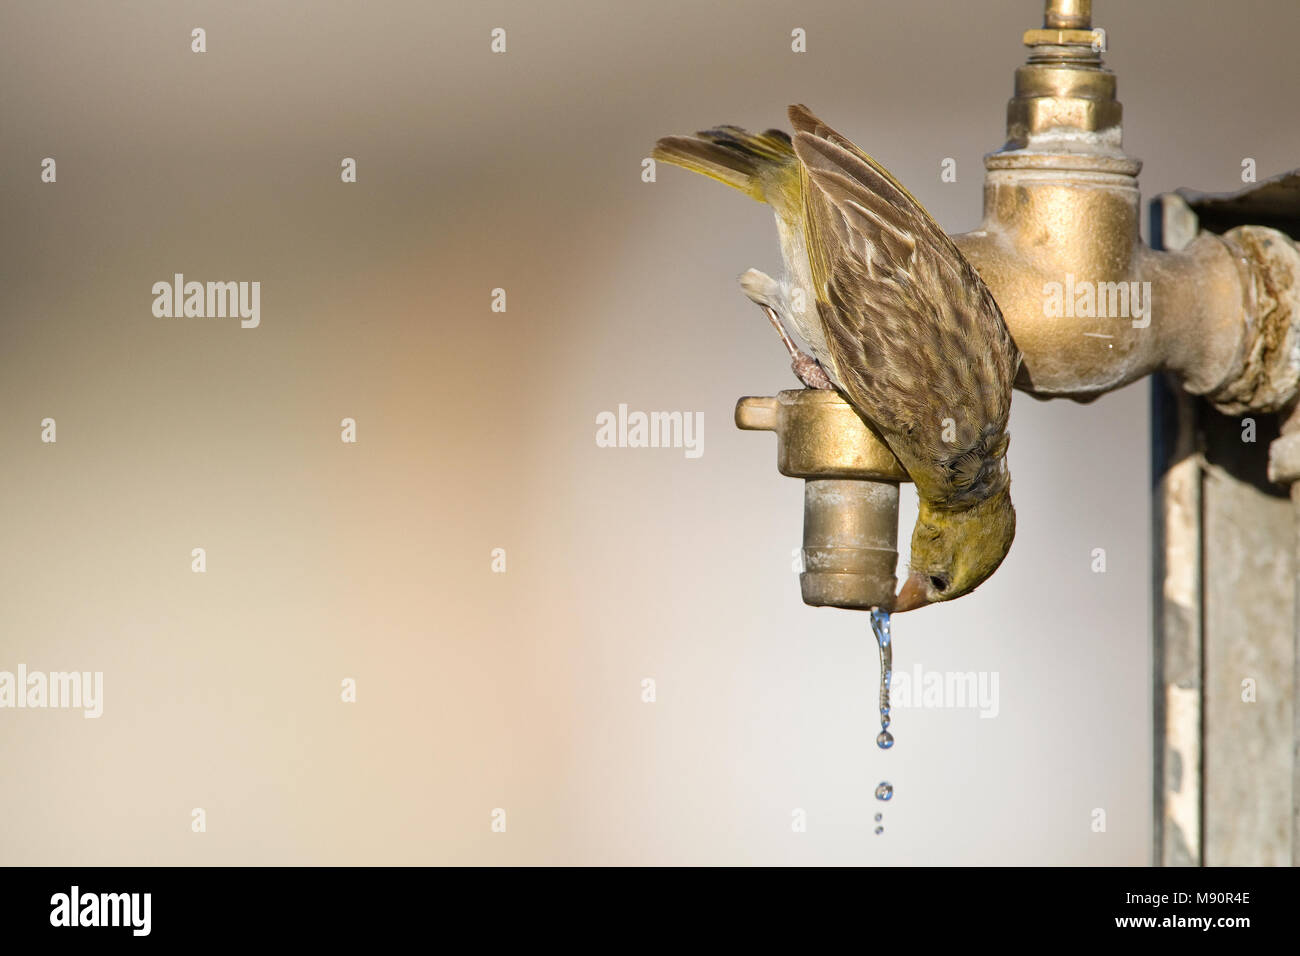 Vrouwtje Maskerwever drinkend uit druppende kraan Namibie, Female Southern Masked-Weaver drinking from tap Namibia - Stock Image